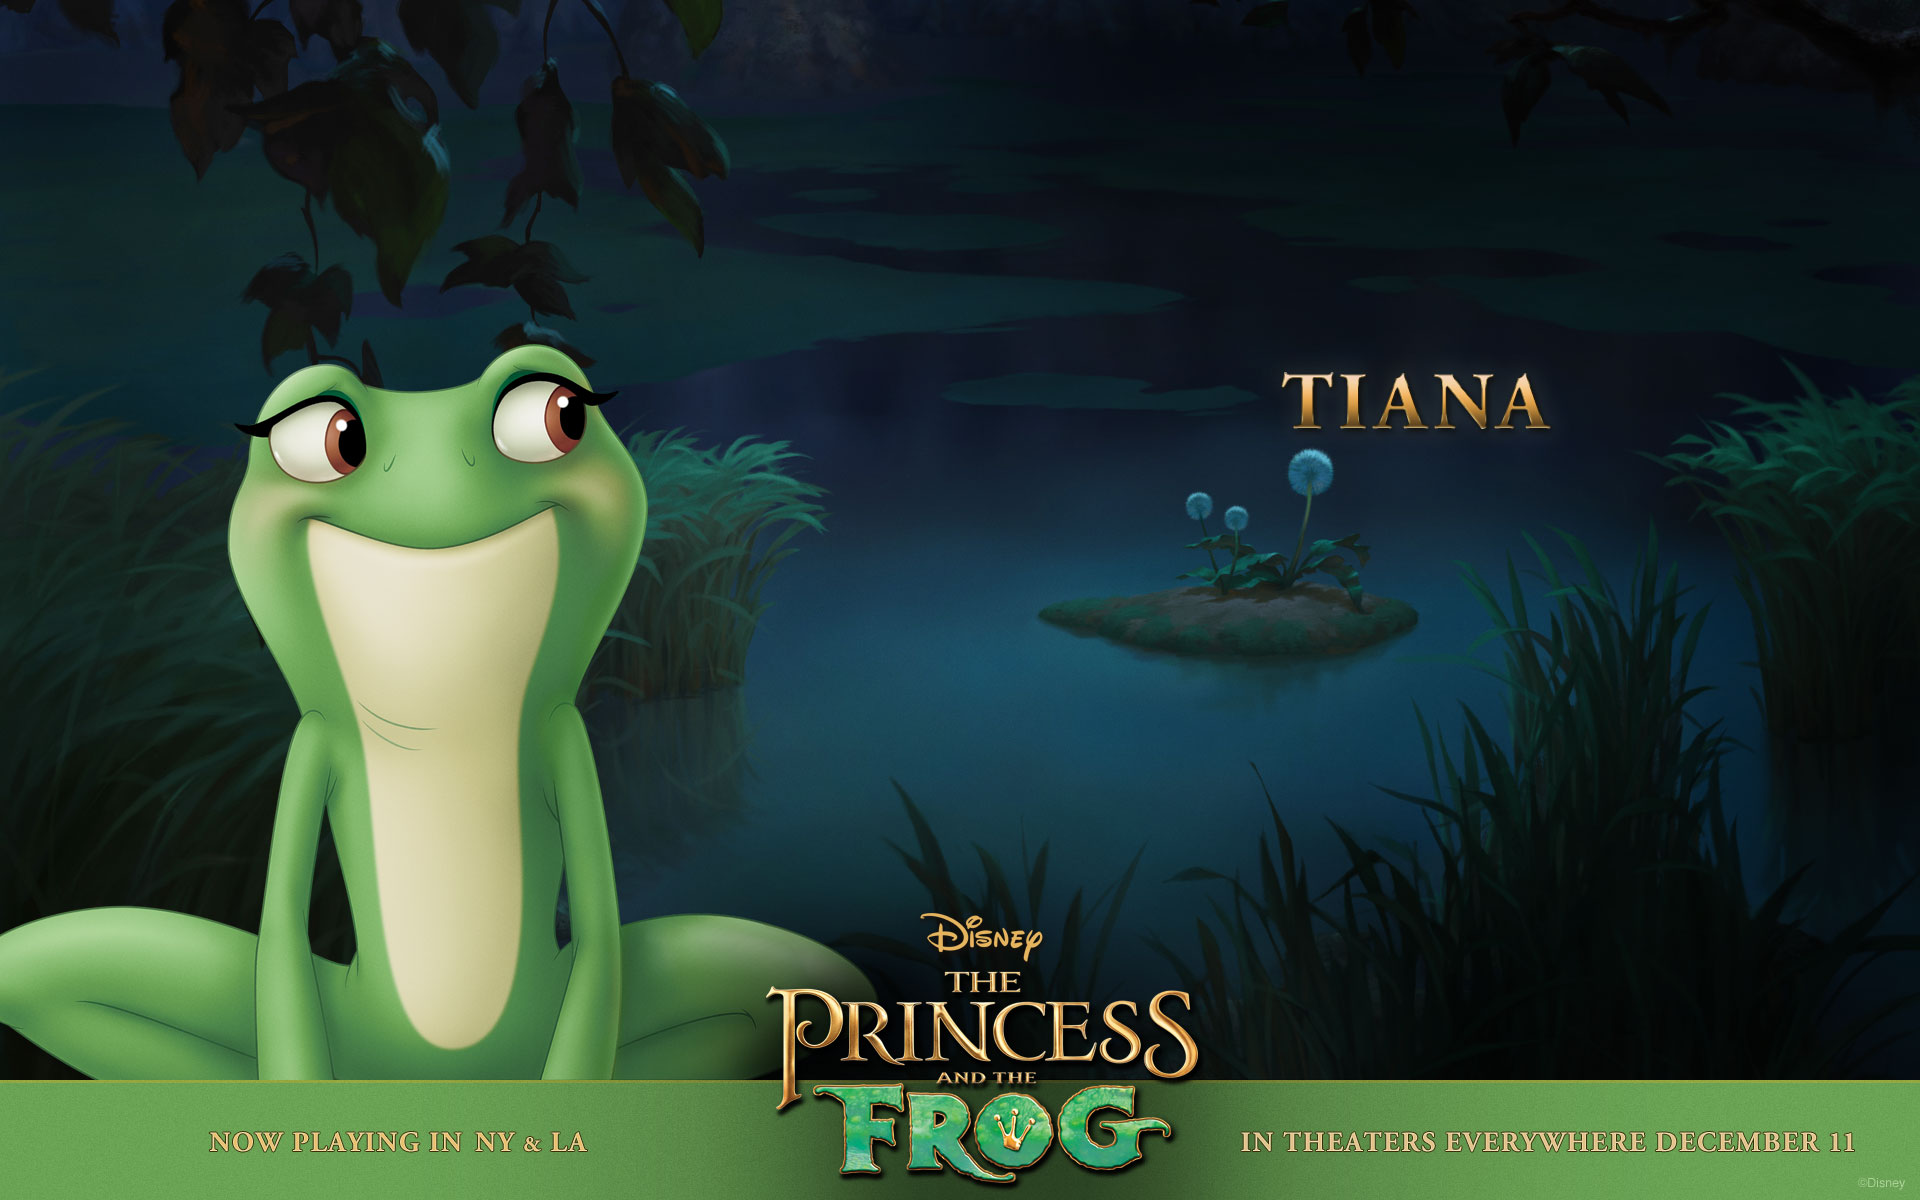 Tiana In The Bayou From Disney S Princess And The Frog Princess And The Frog Frog